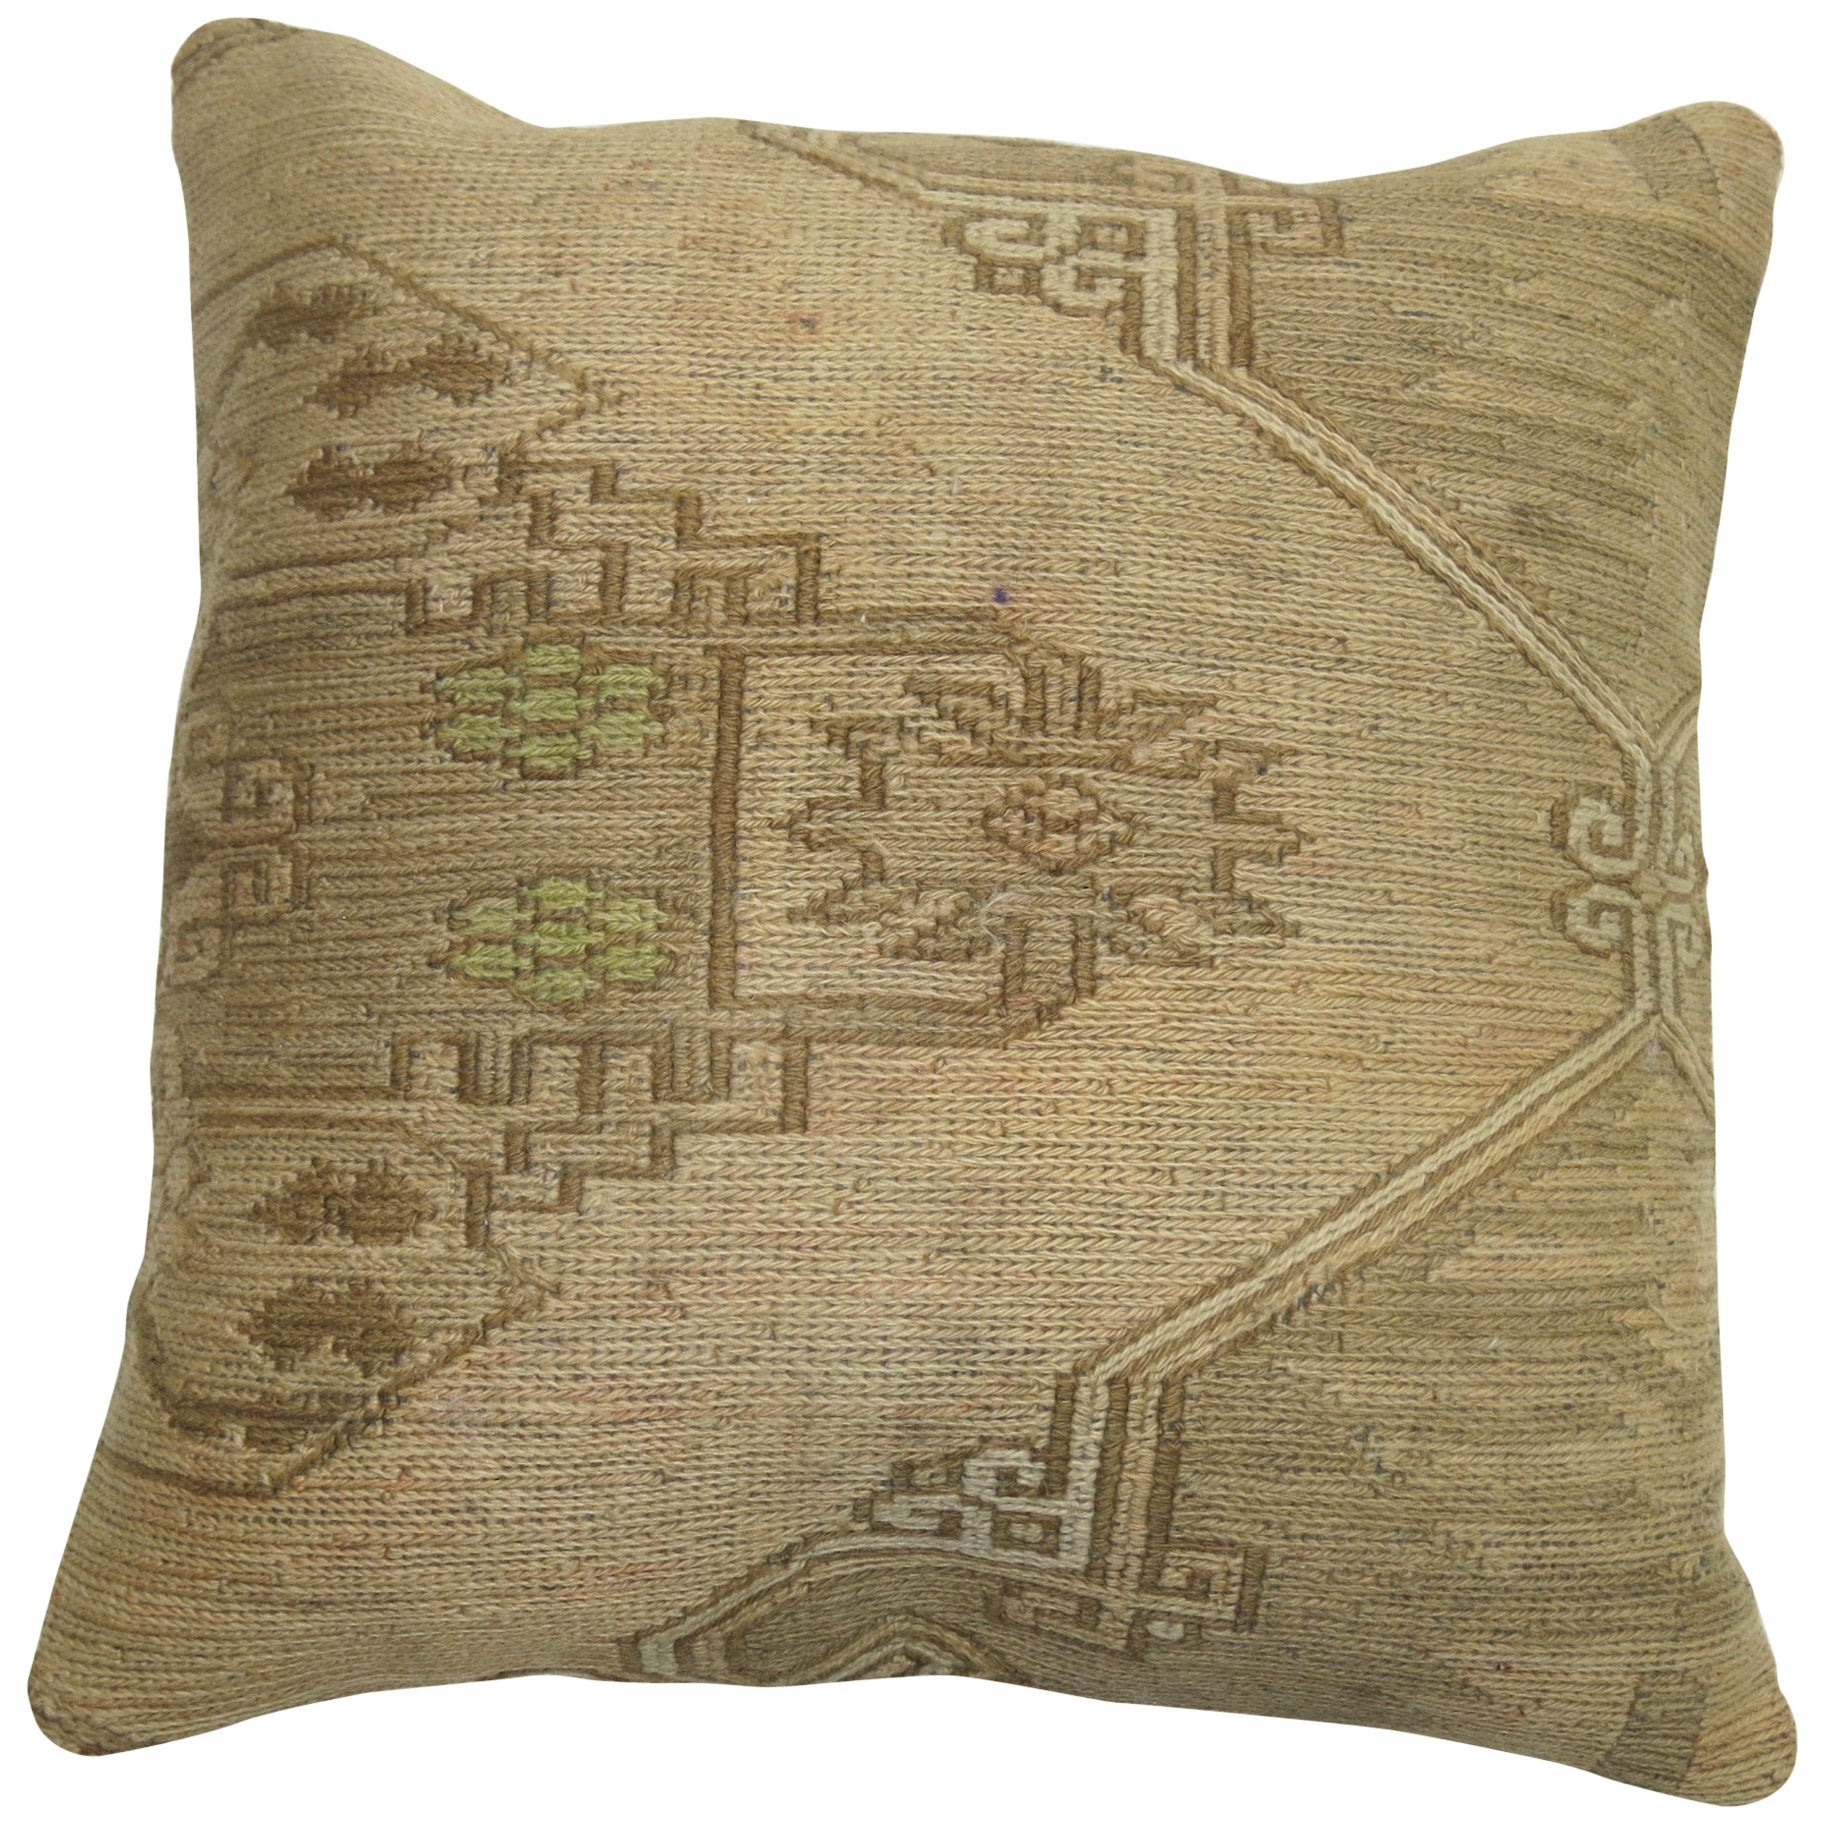 Persian Flat-Weave Rug Pillow